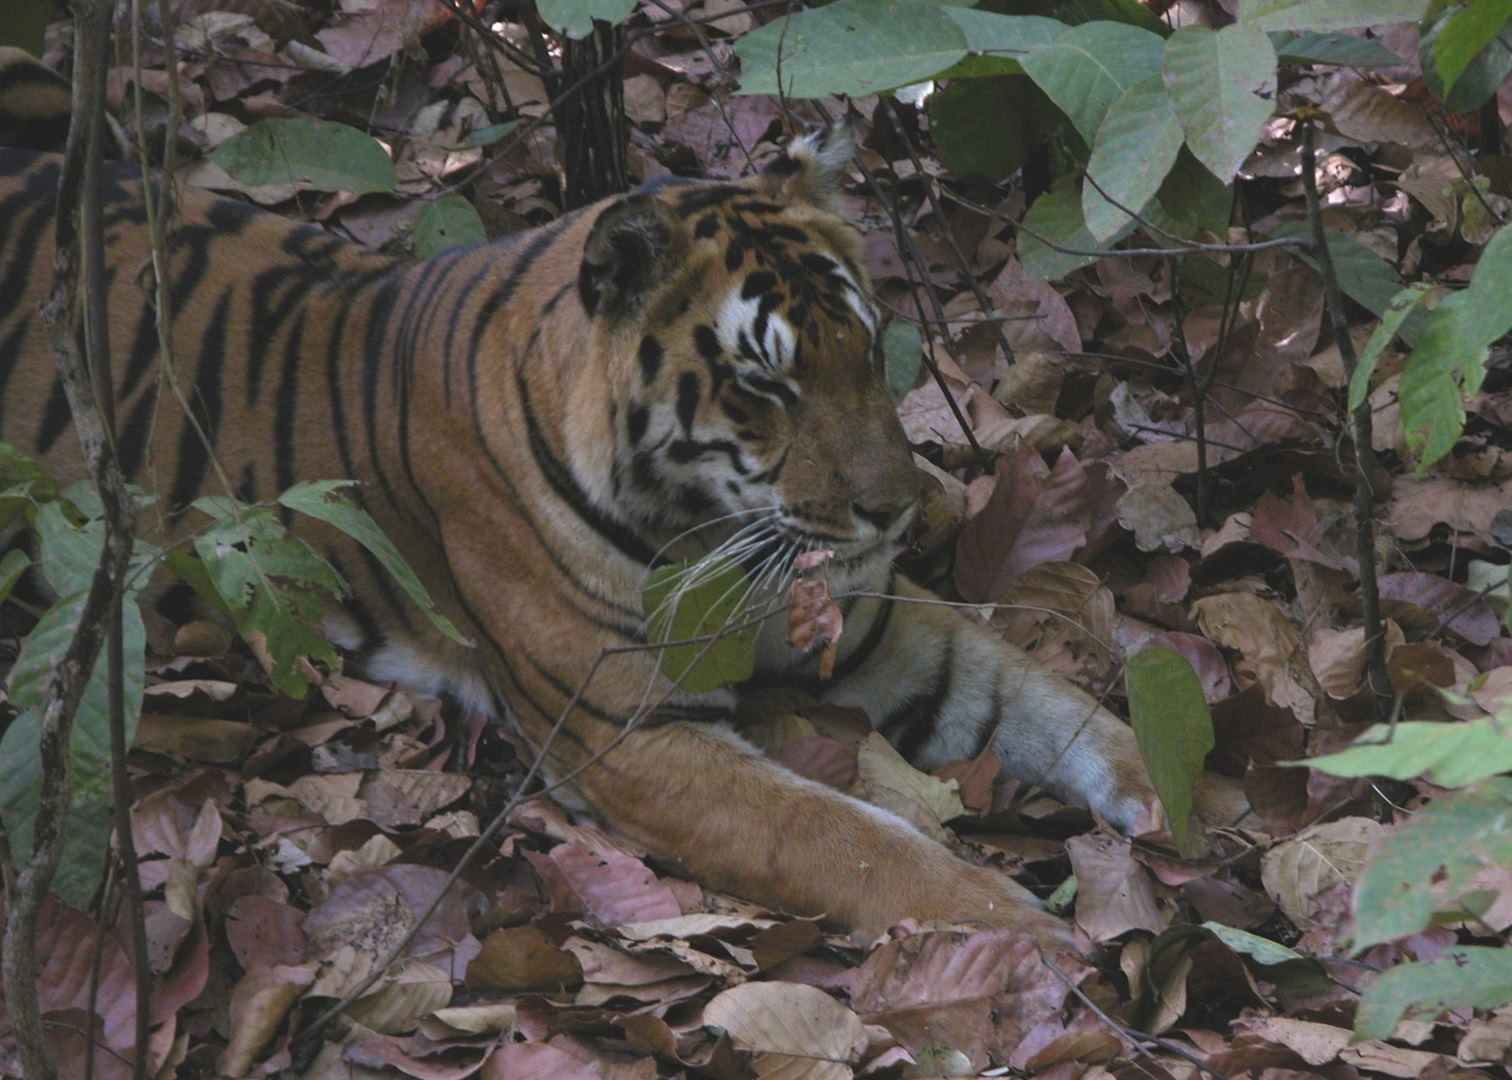 corbett tiger reserve Jim corbett national park is a part of the bigger corbett tiger reserve, situated in the foothills of the grand himalayas in the nainital district of uttarakhand.